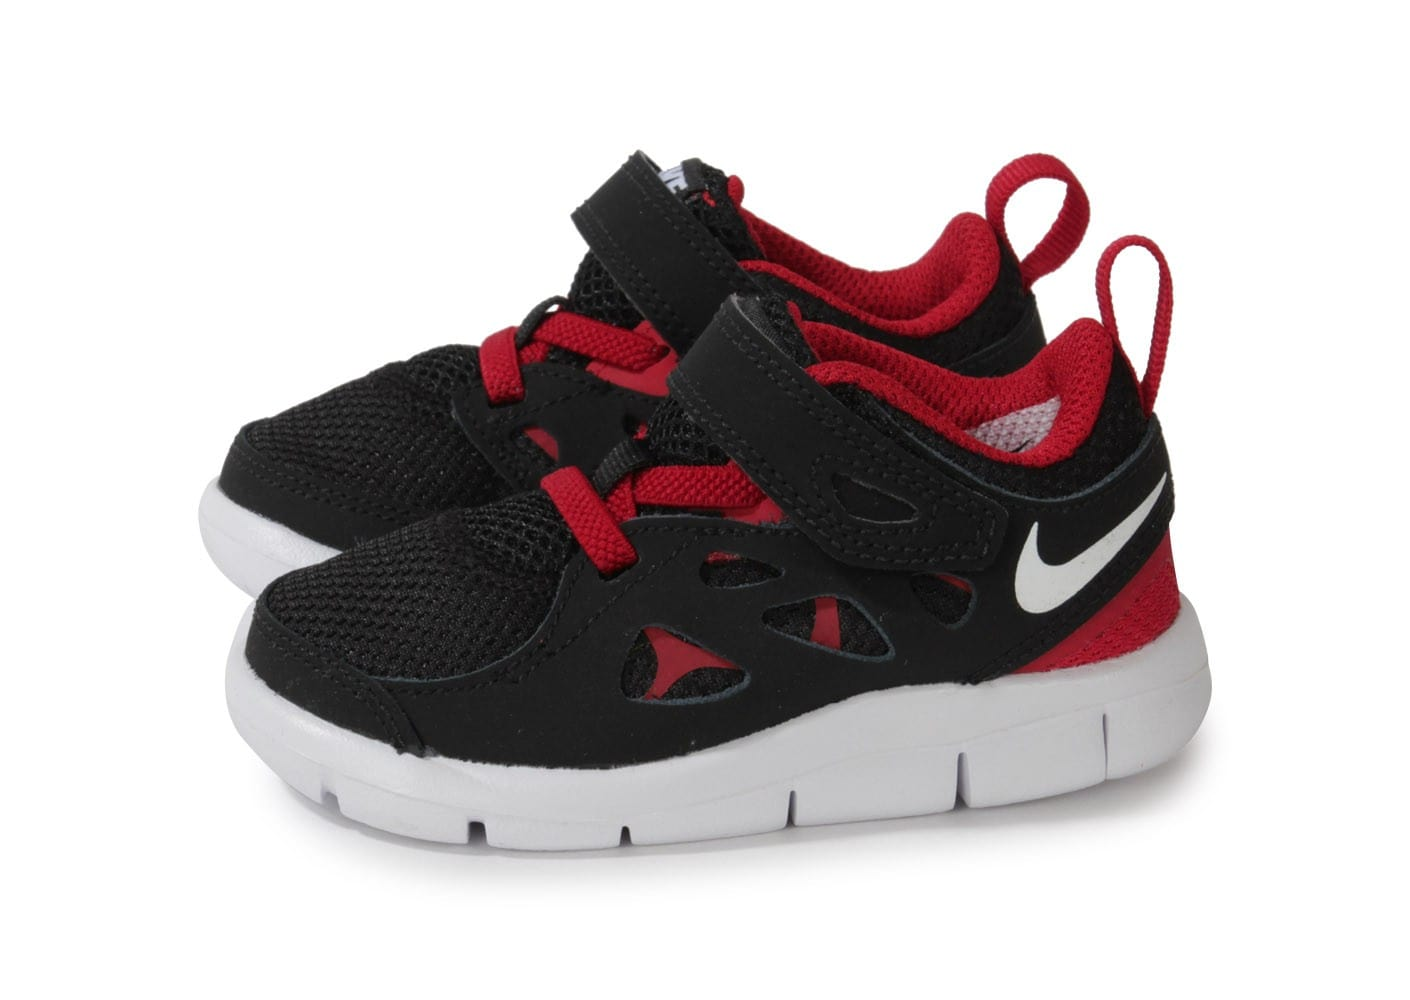 Nike free bebe pas cher - Dommage ouvrage pas cher ...